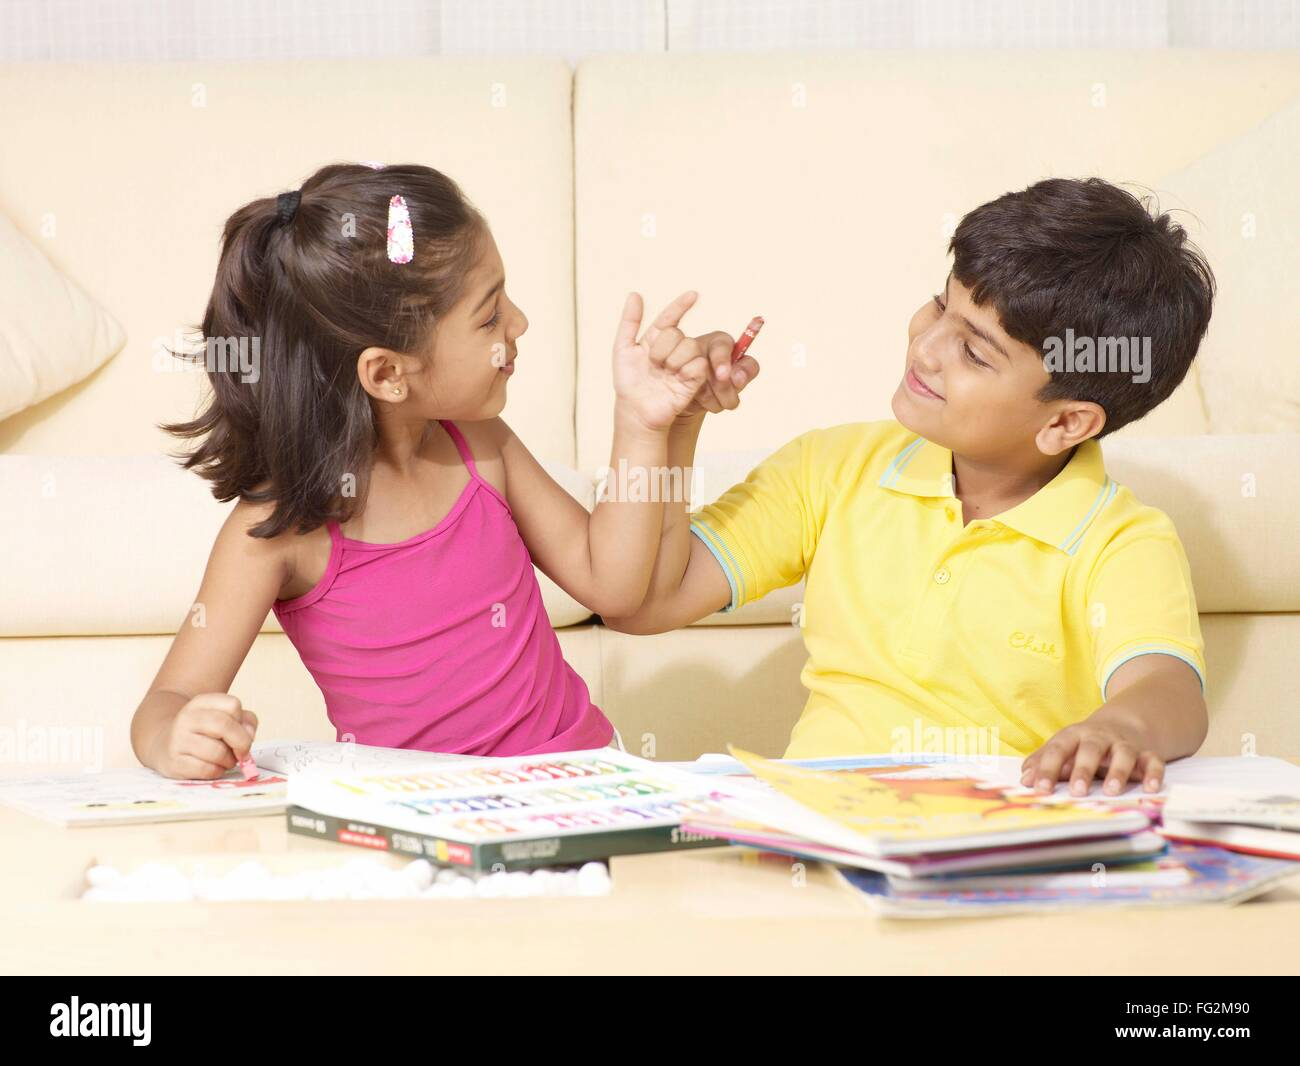 Brother and sister doing naughty expression sitting in house MR#702T, MR#702U Stock Photo